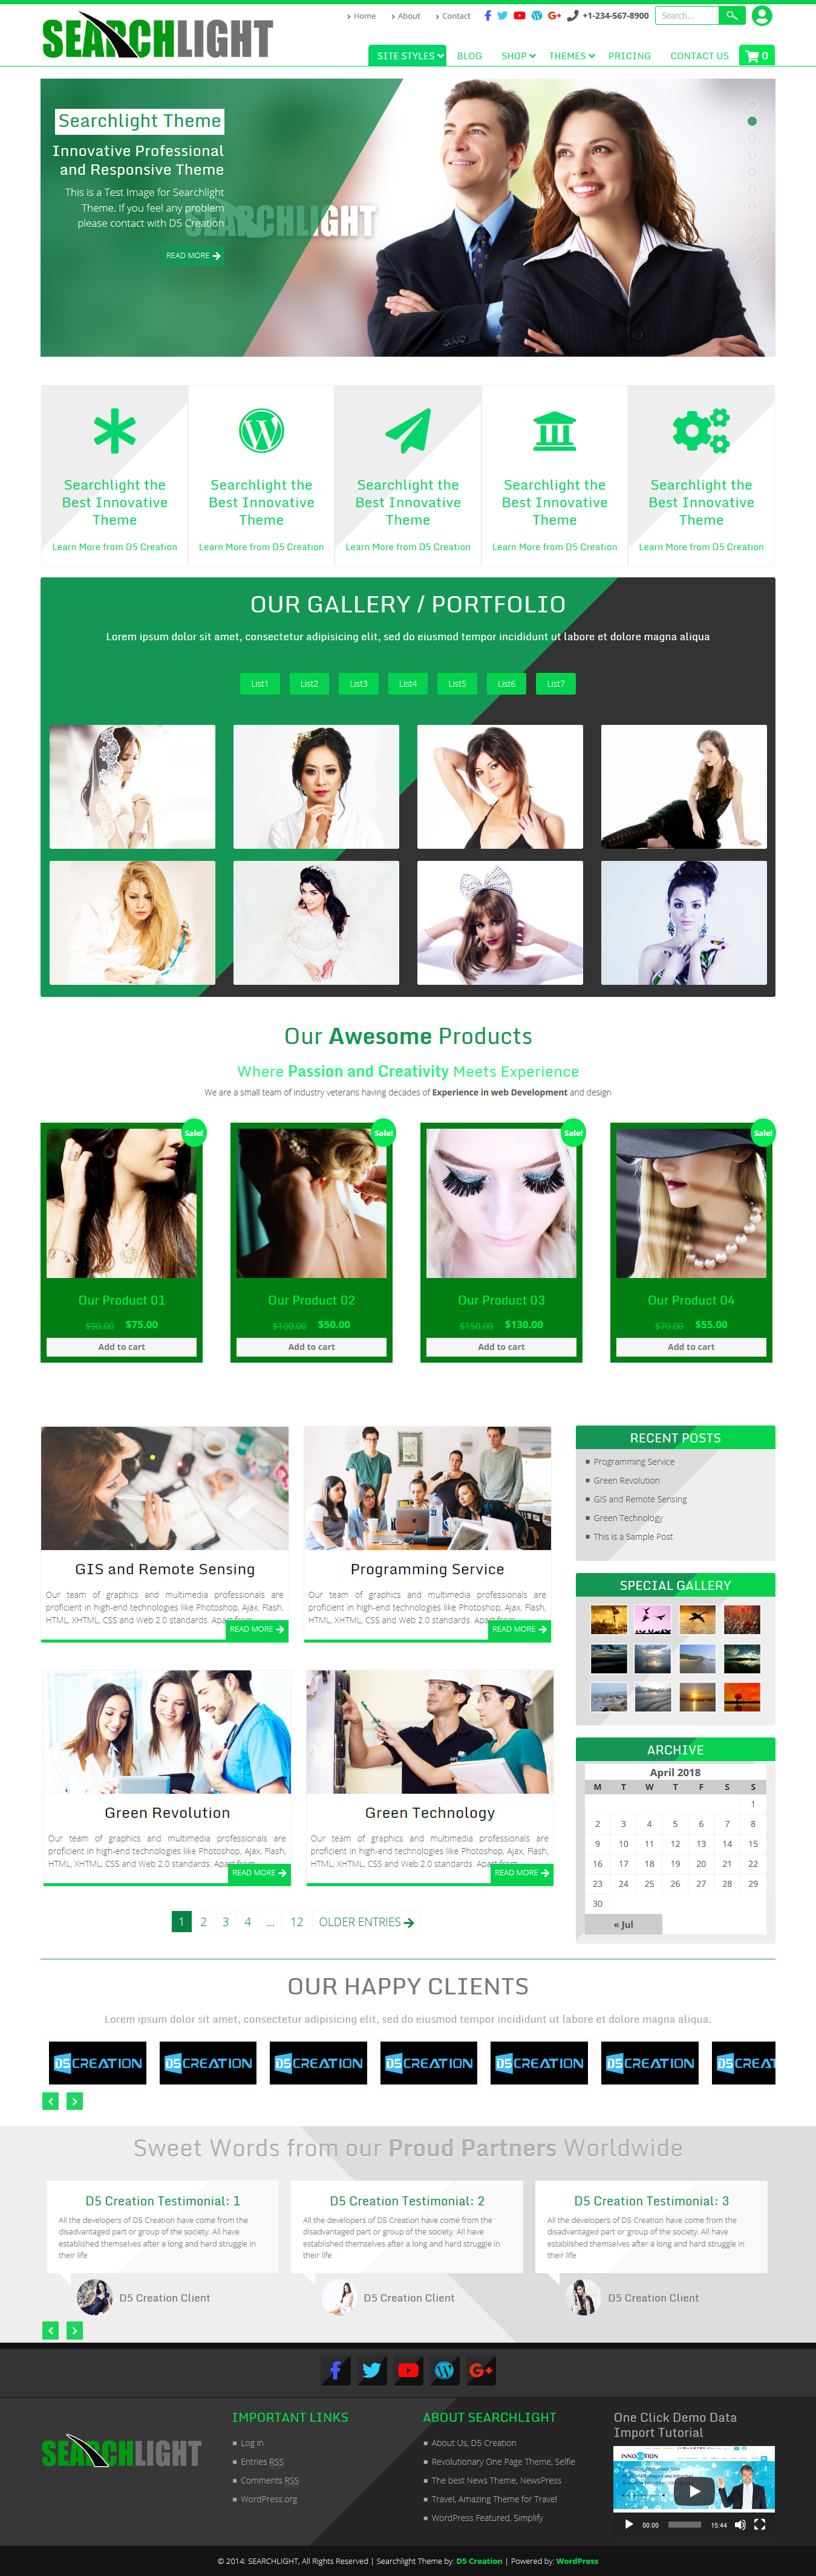 searchlight wordpress themes by d5creation.com